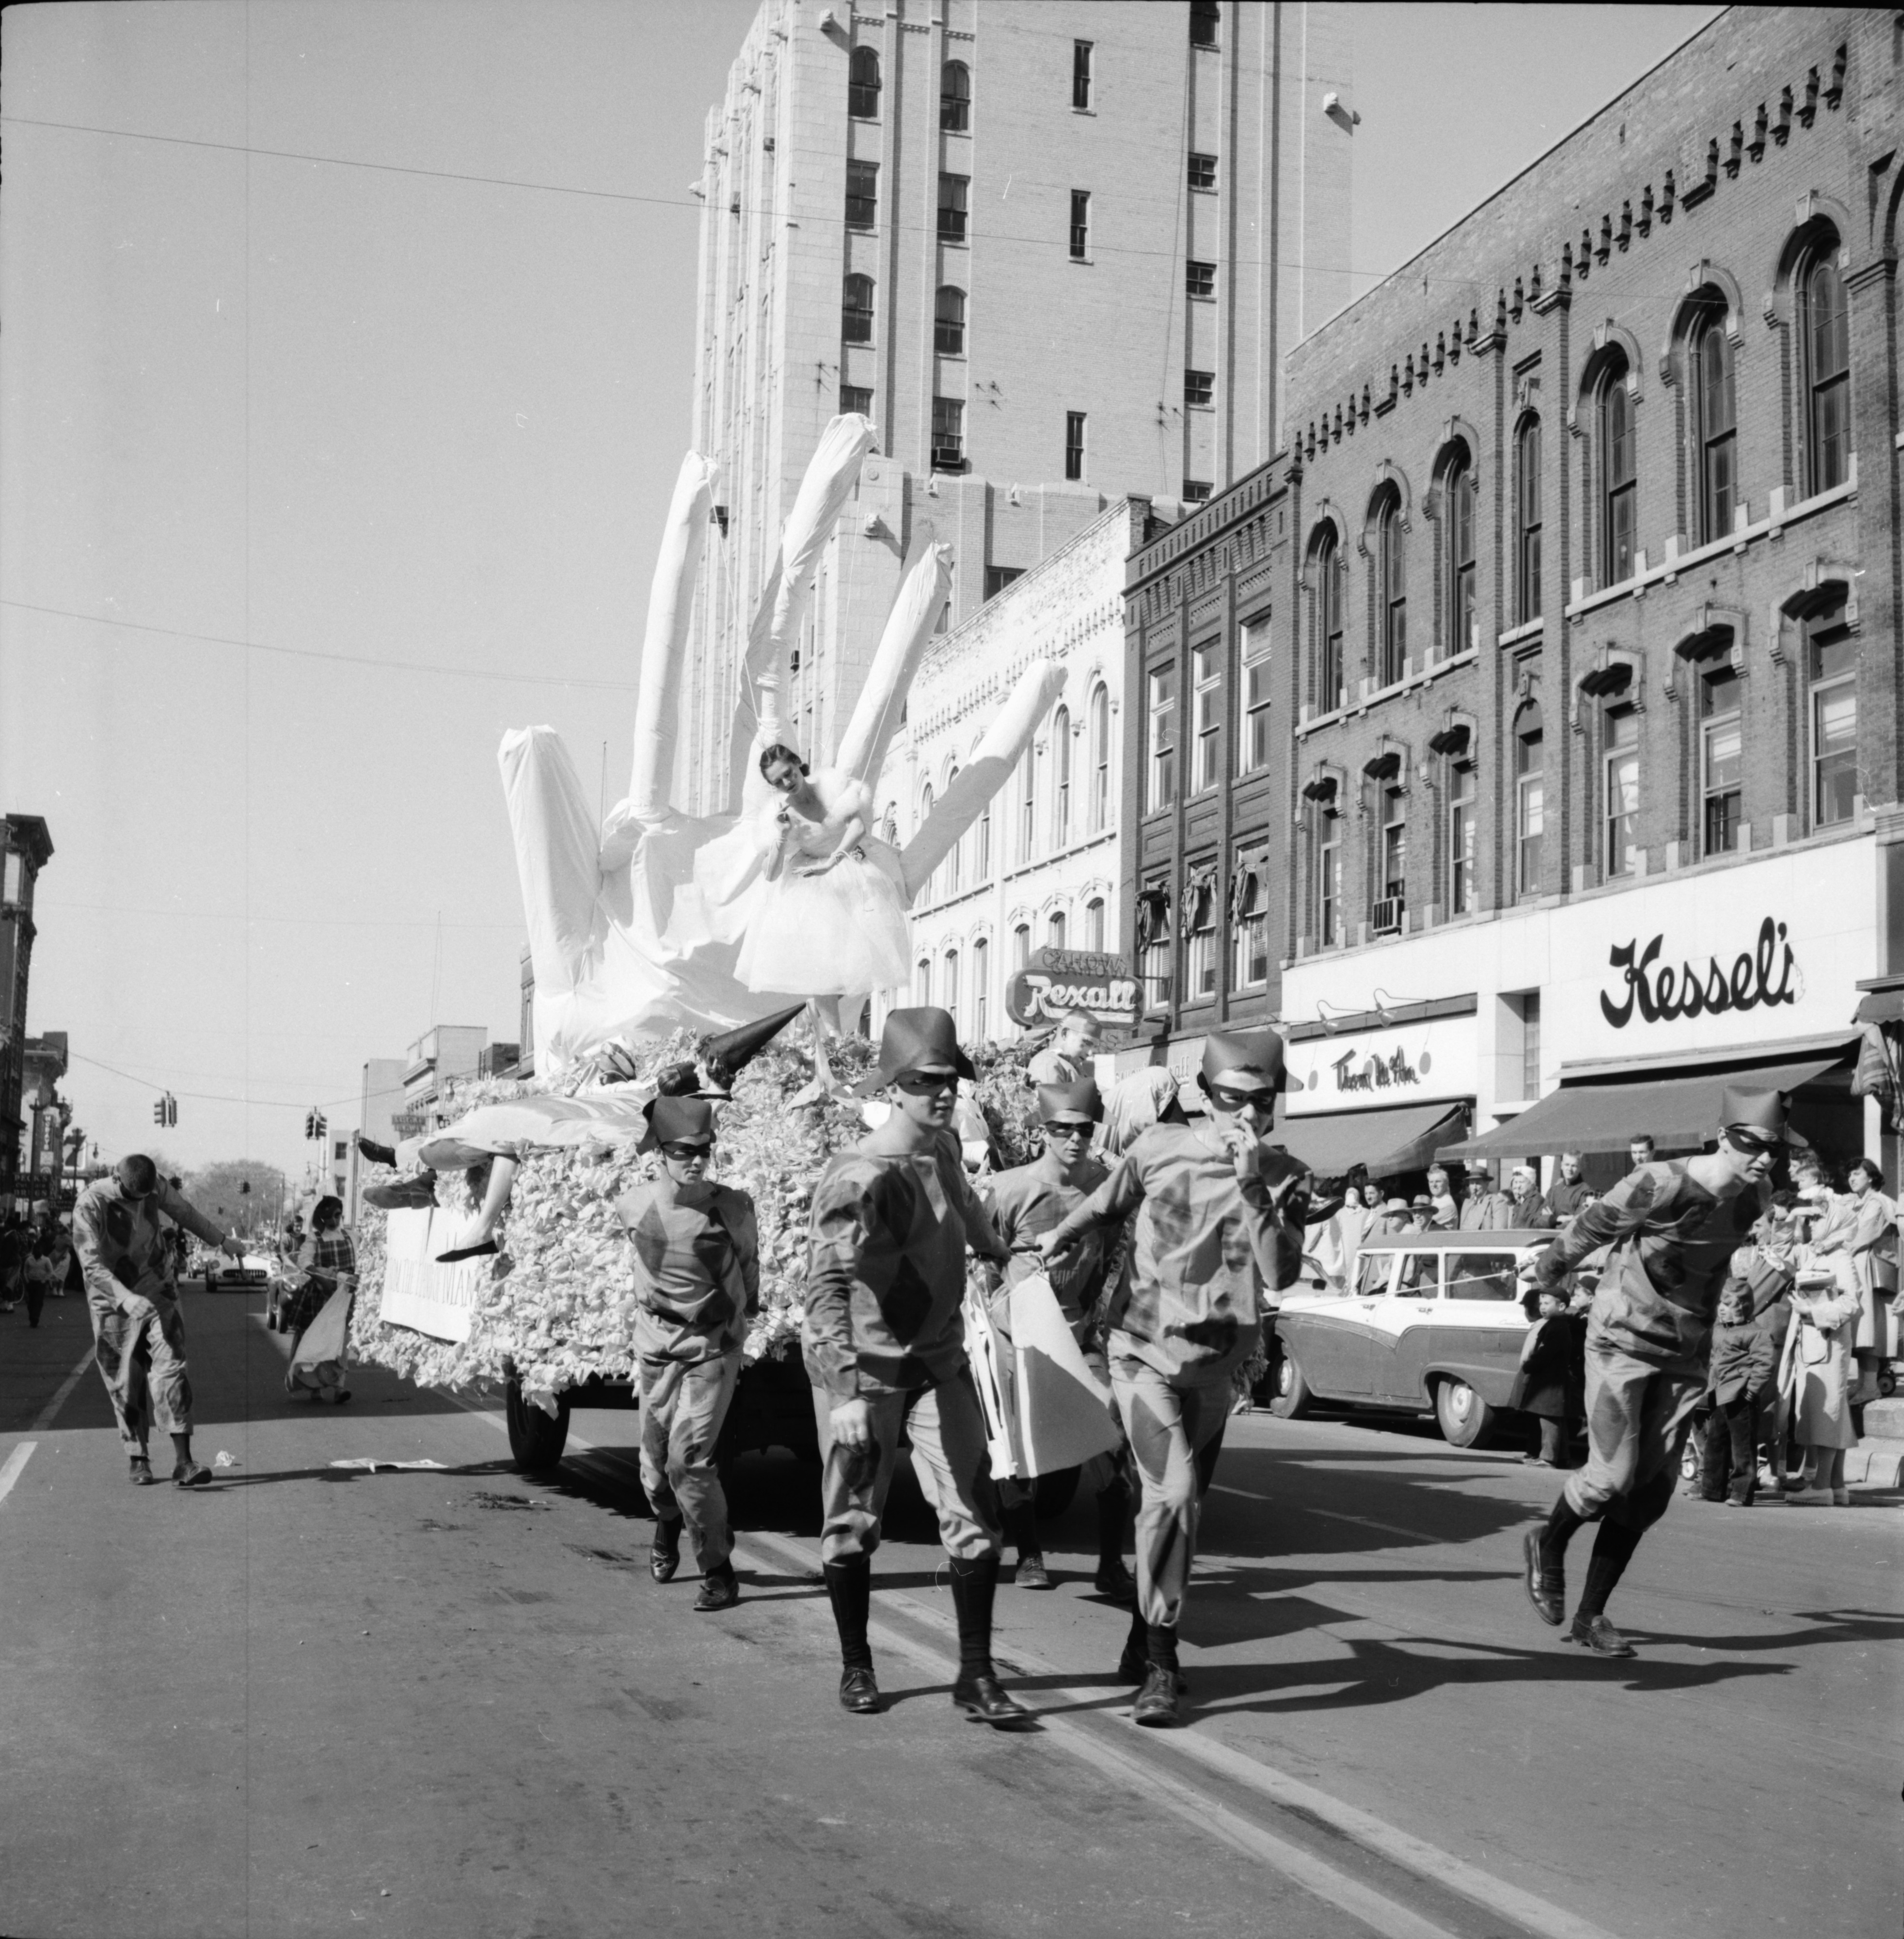 Sigma Nu and Kappa Kappa Gamma float in the Michigras Parade, April 1958 image